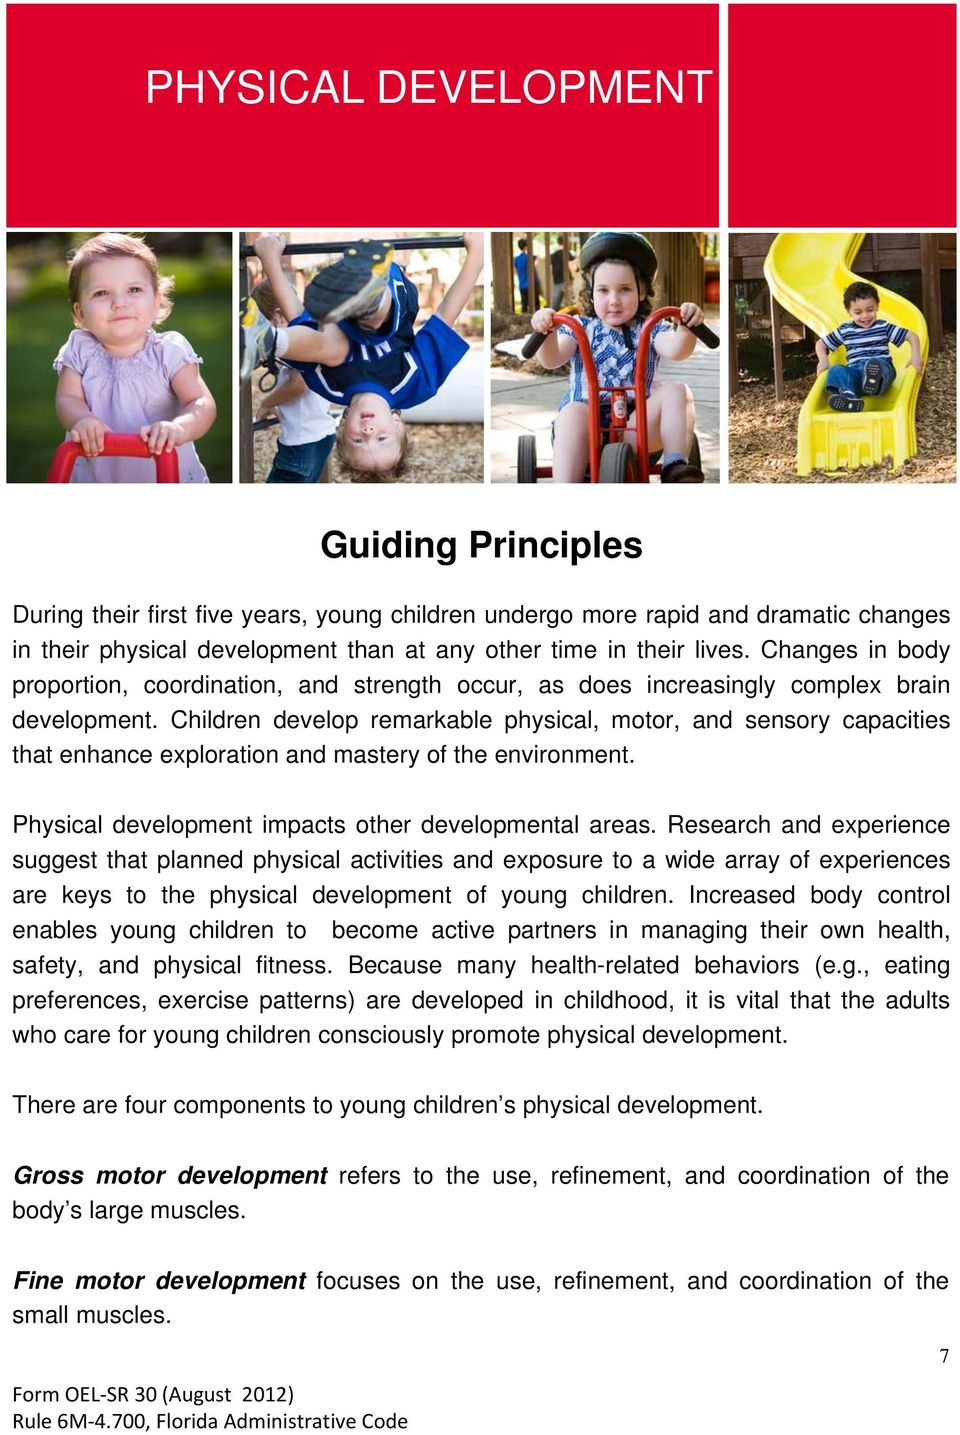 Children develop remarkable physical, motor, and sensory capacities that enhance exploration and mastery of the environment. Physical development impacts other developmental areas.